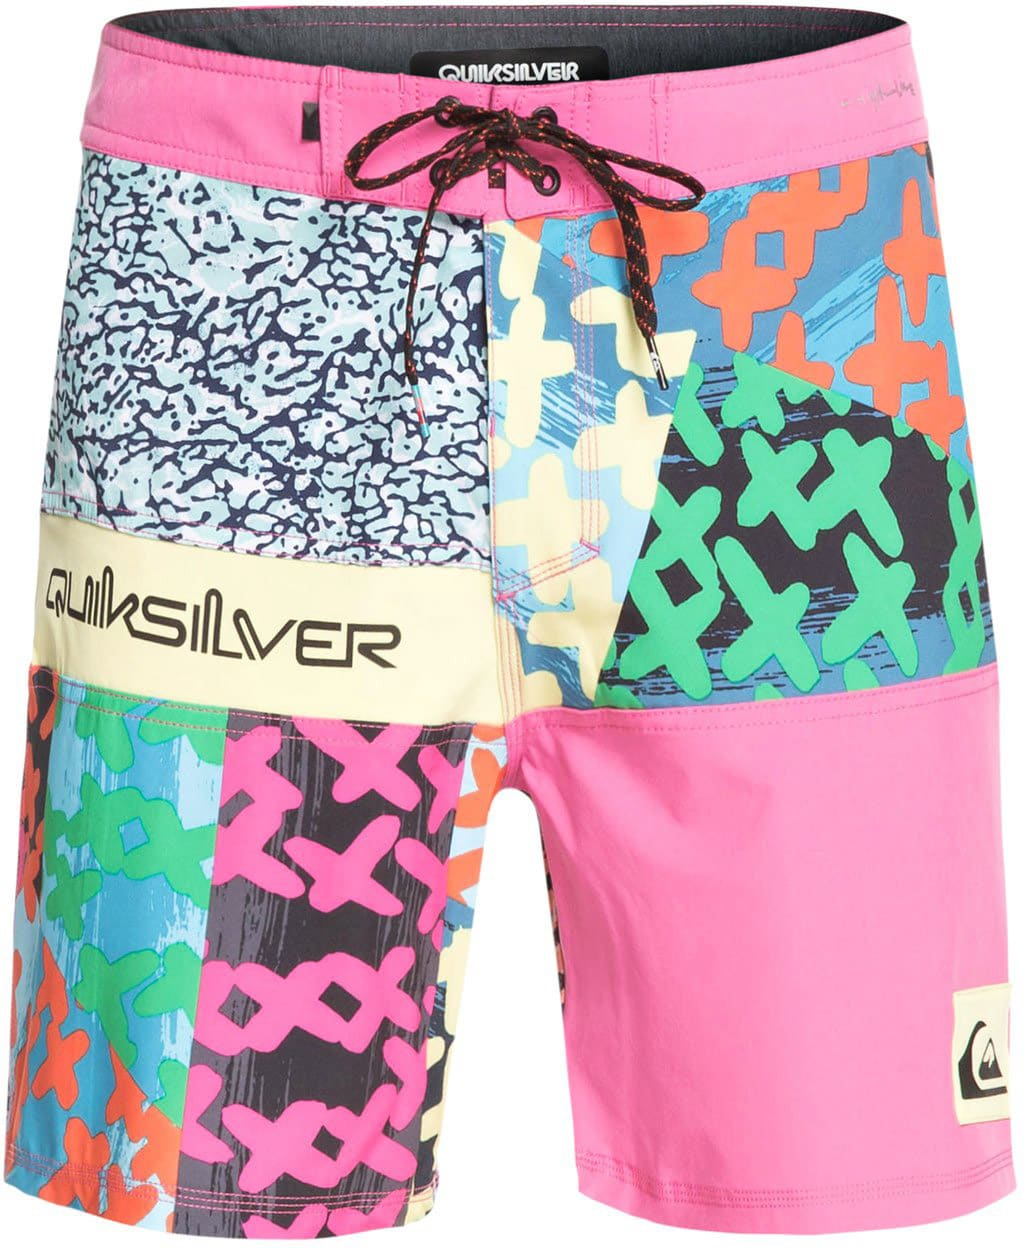 Quiksilver Highline More Paint 18 Boardshorts